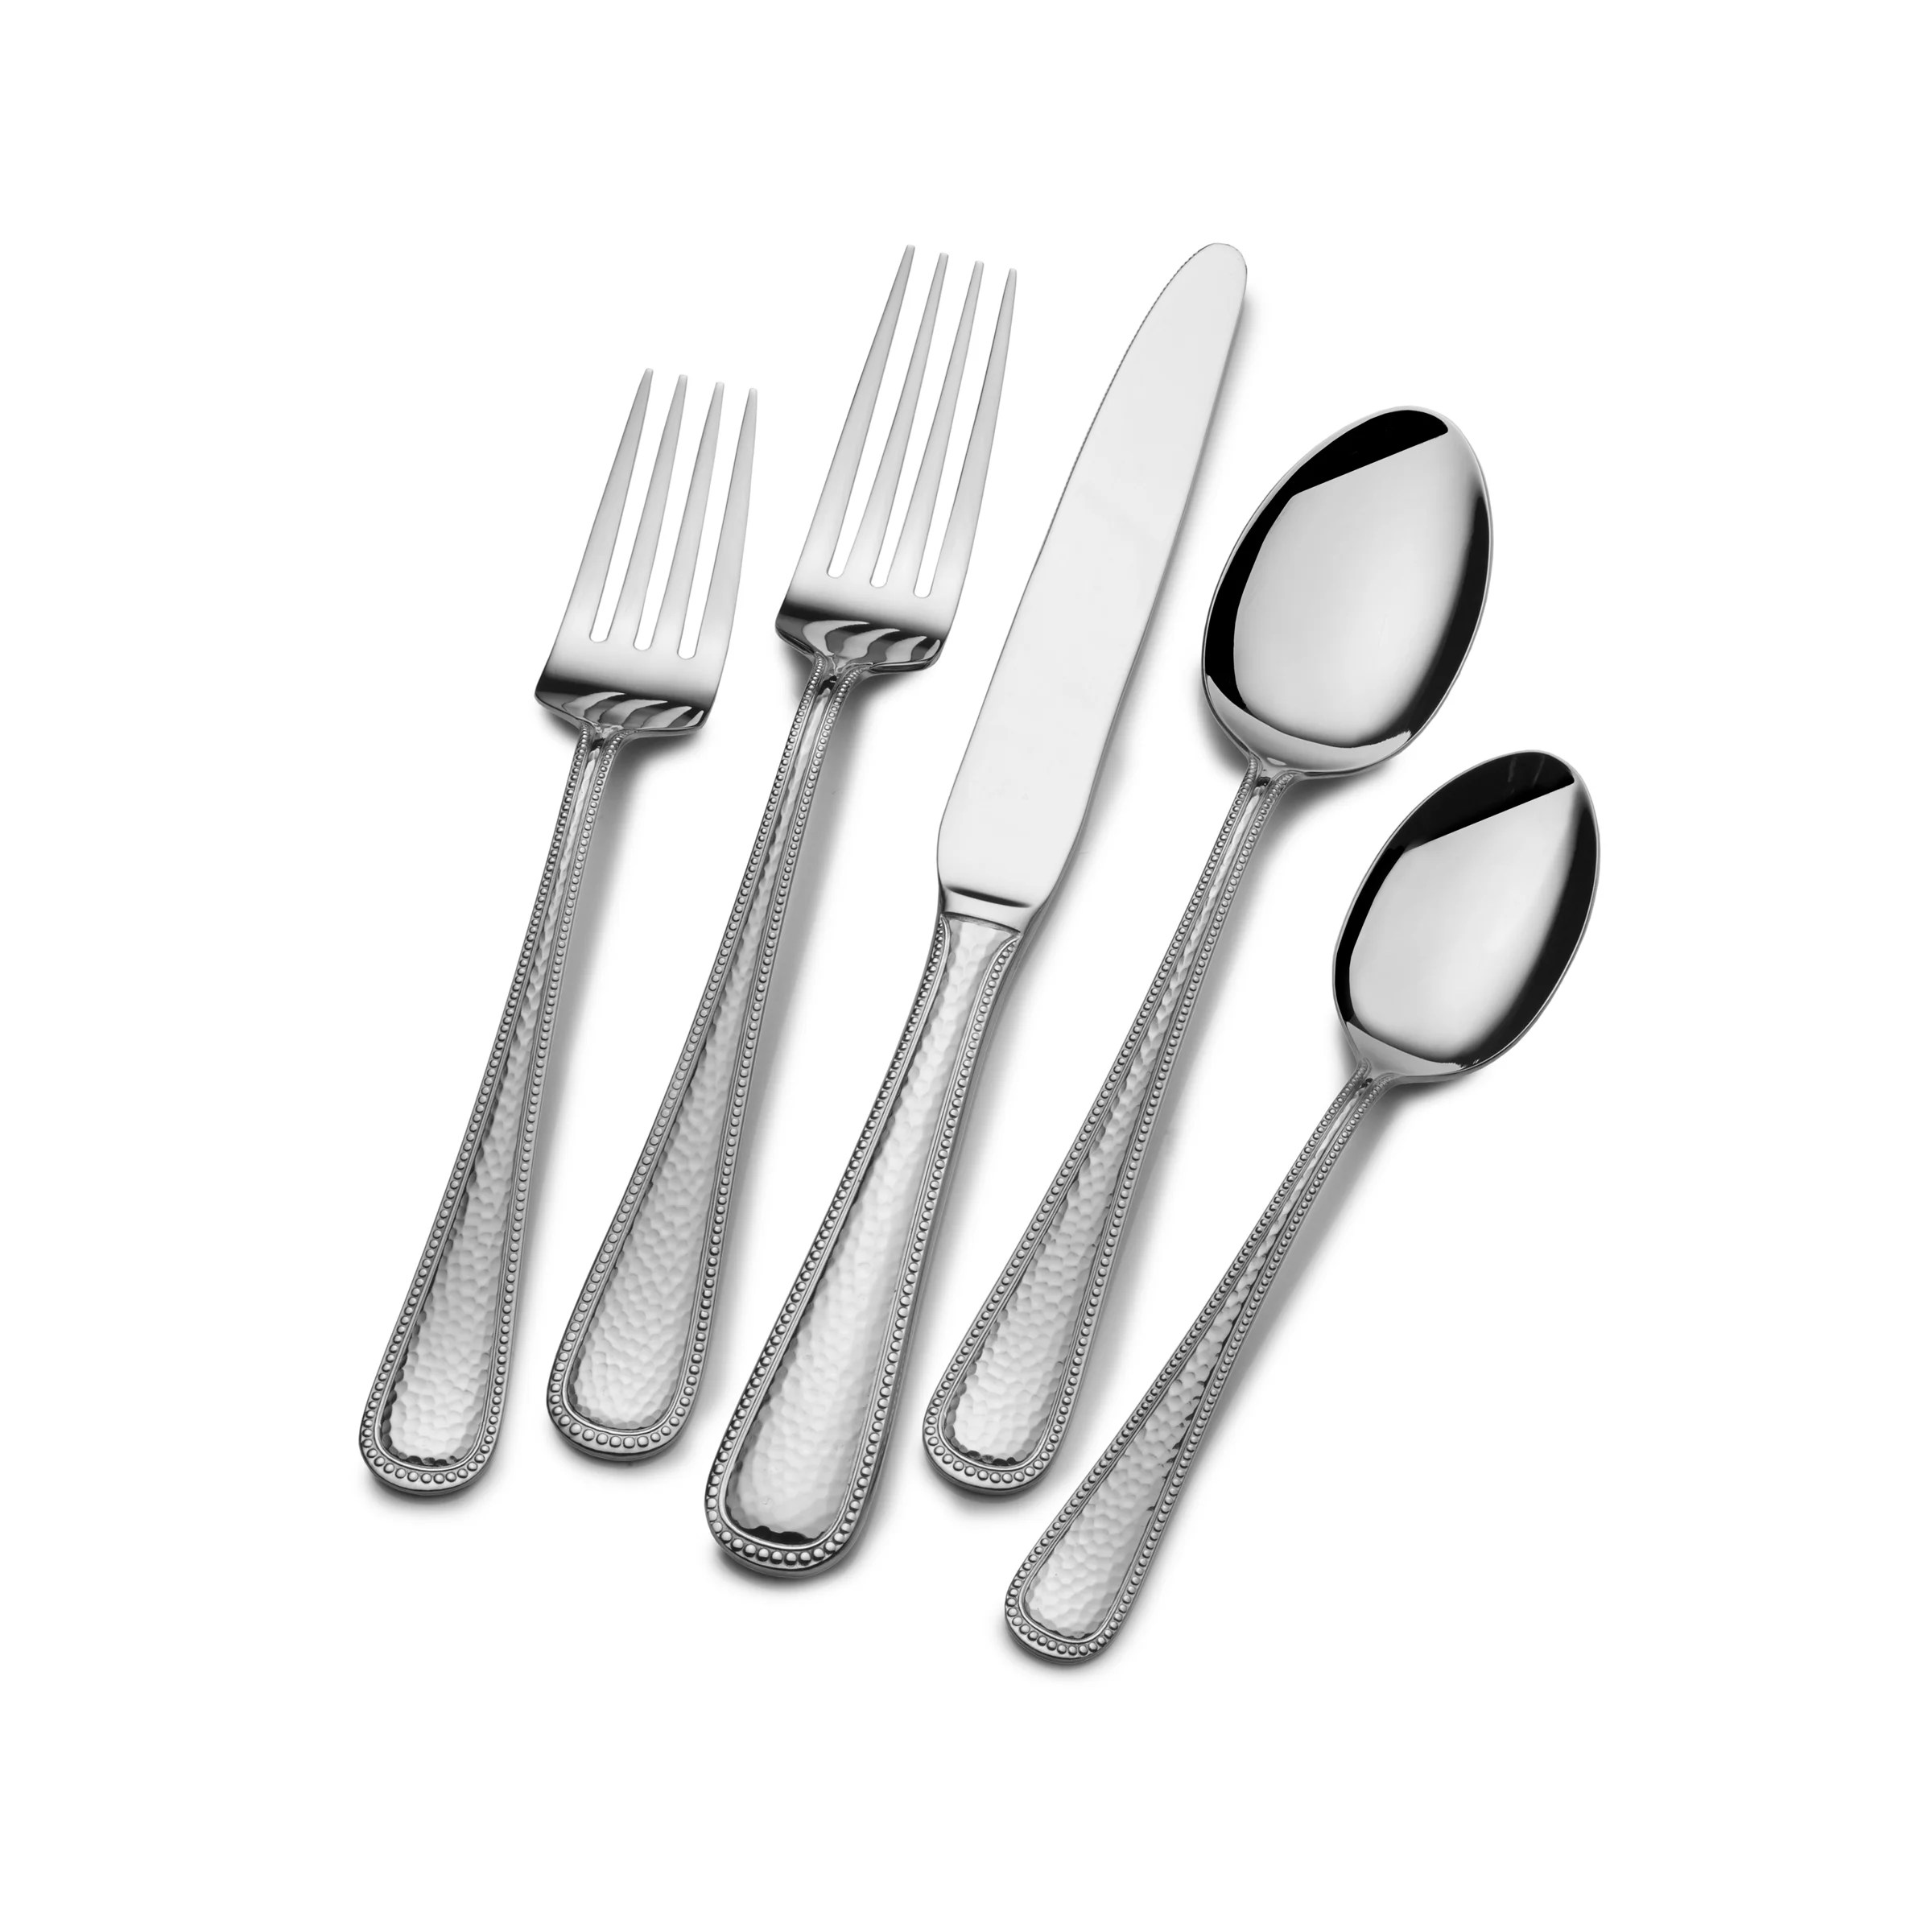 Used Flatware For Sale Flatware Shop Our Best Kitchen Dining Deals Online At Overstock